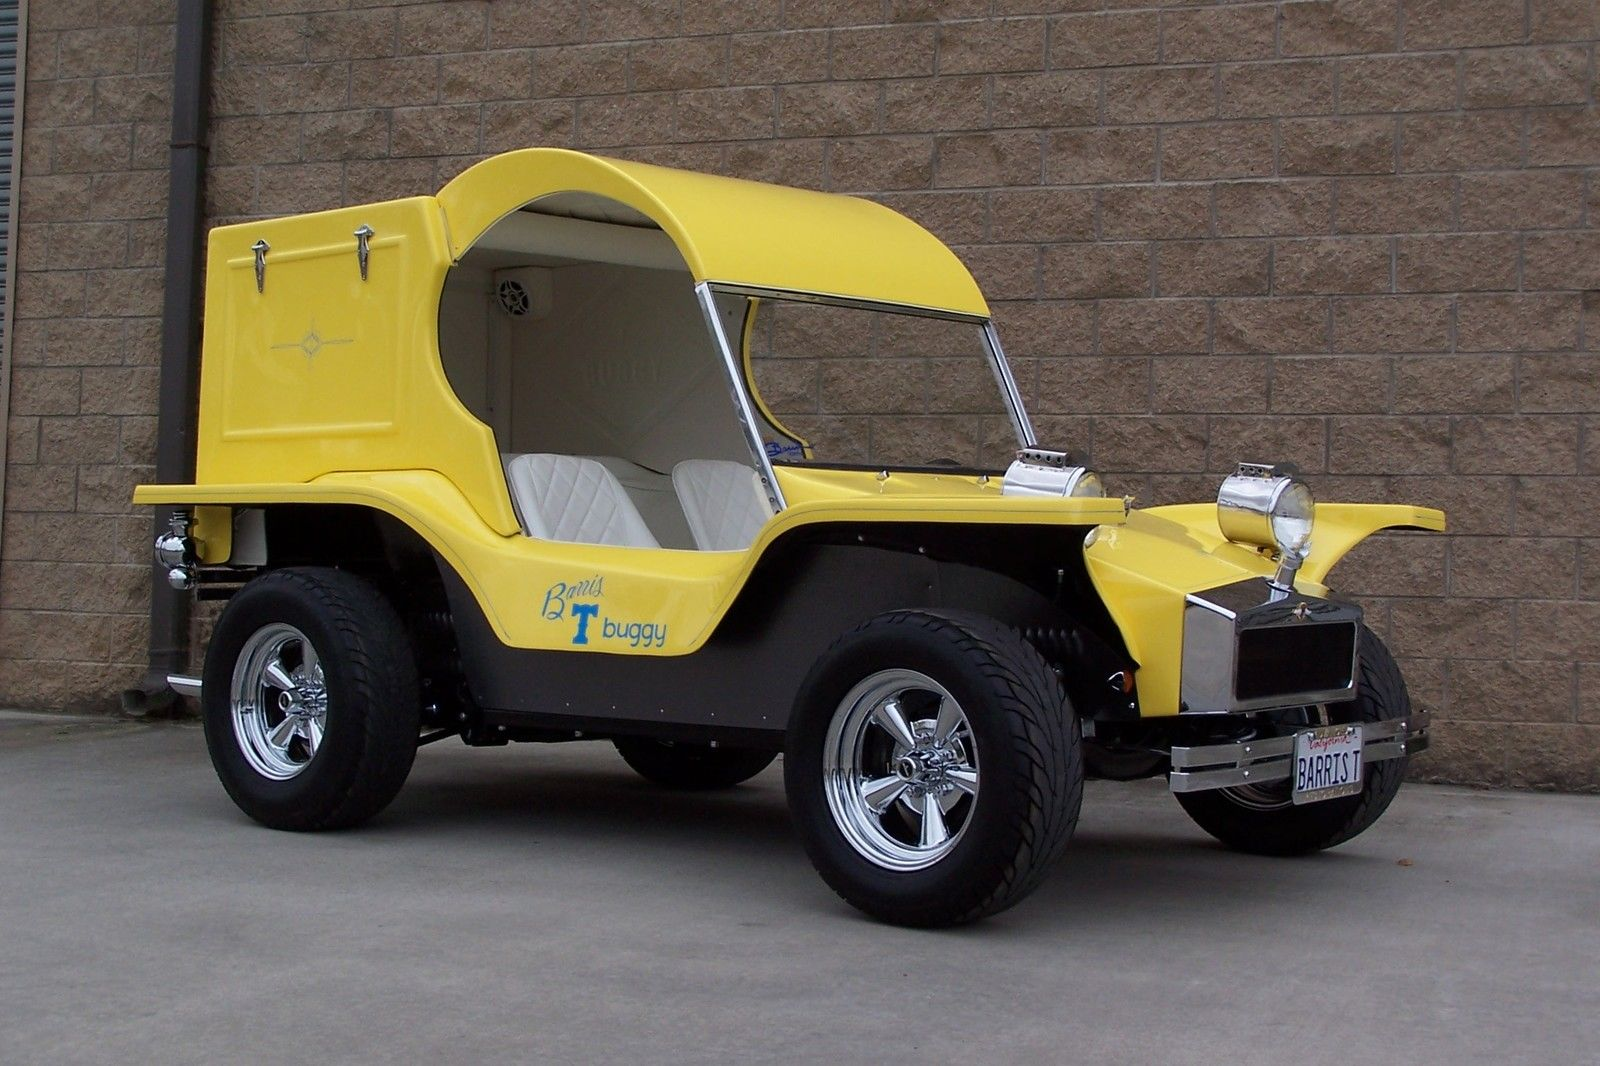 Chevy Kit Car >> George Barris' Personal Dune Buggy Is for Sale - autoevolution